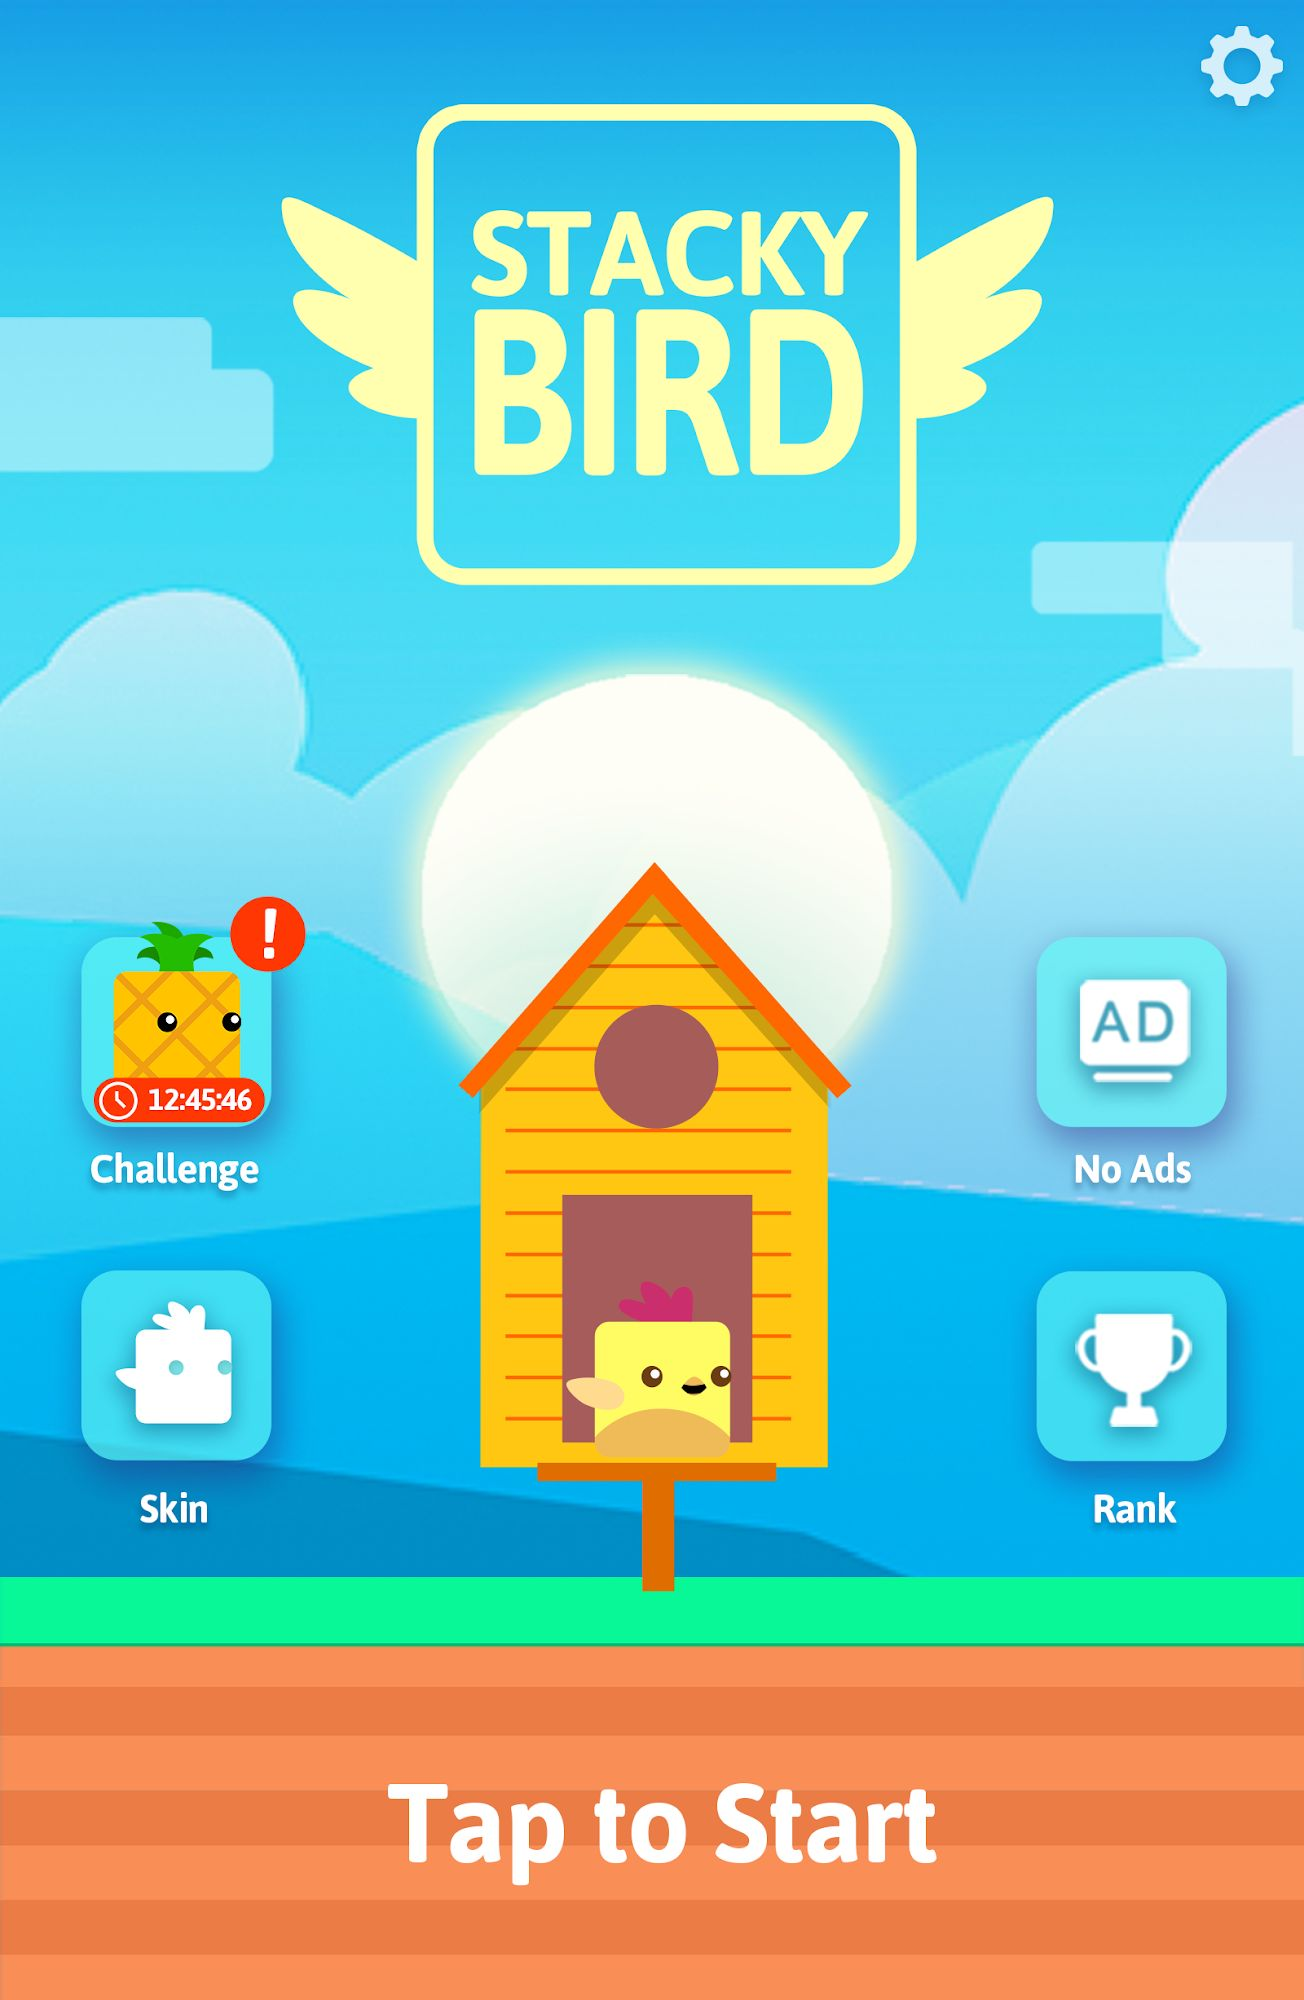 Stacky Bird: Hyper Casual Flying Birdie Game screenshot 1